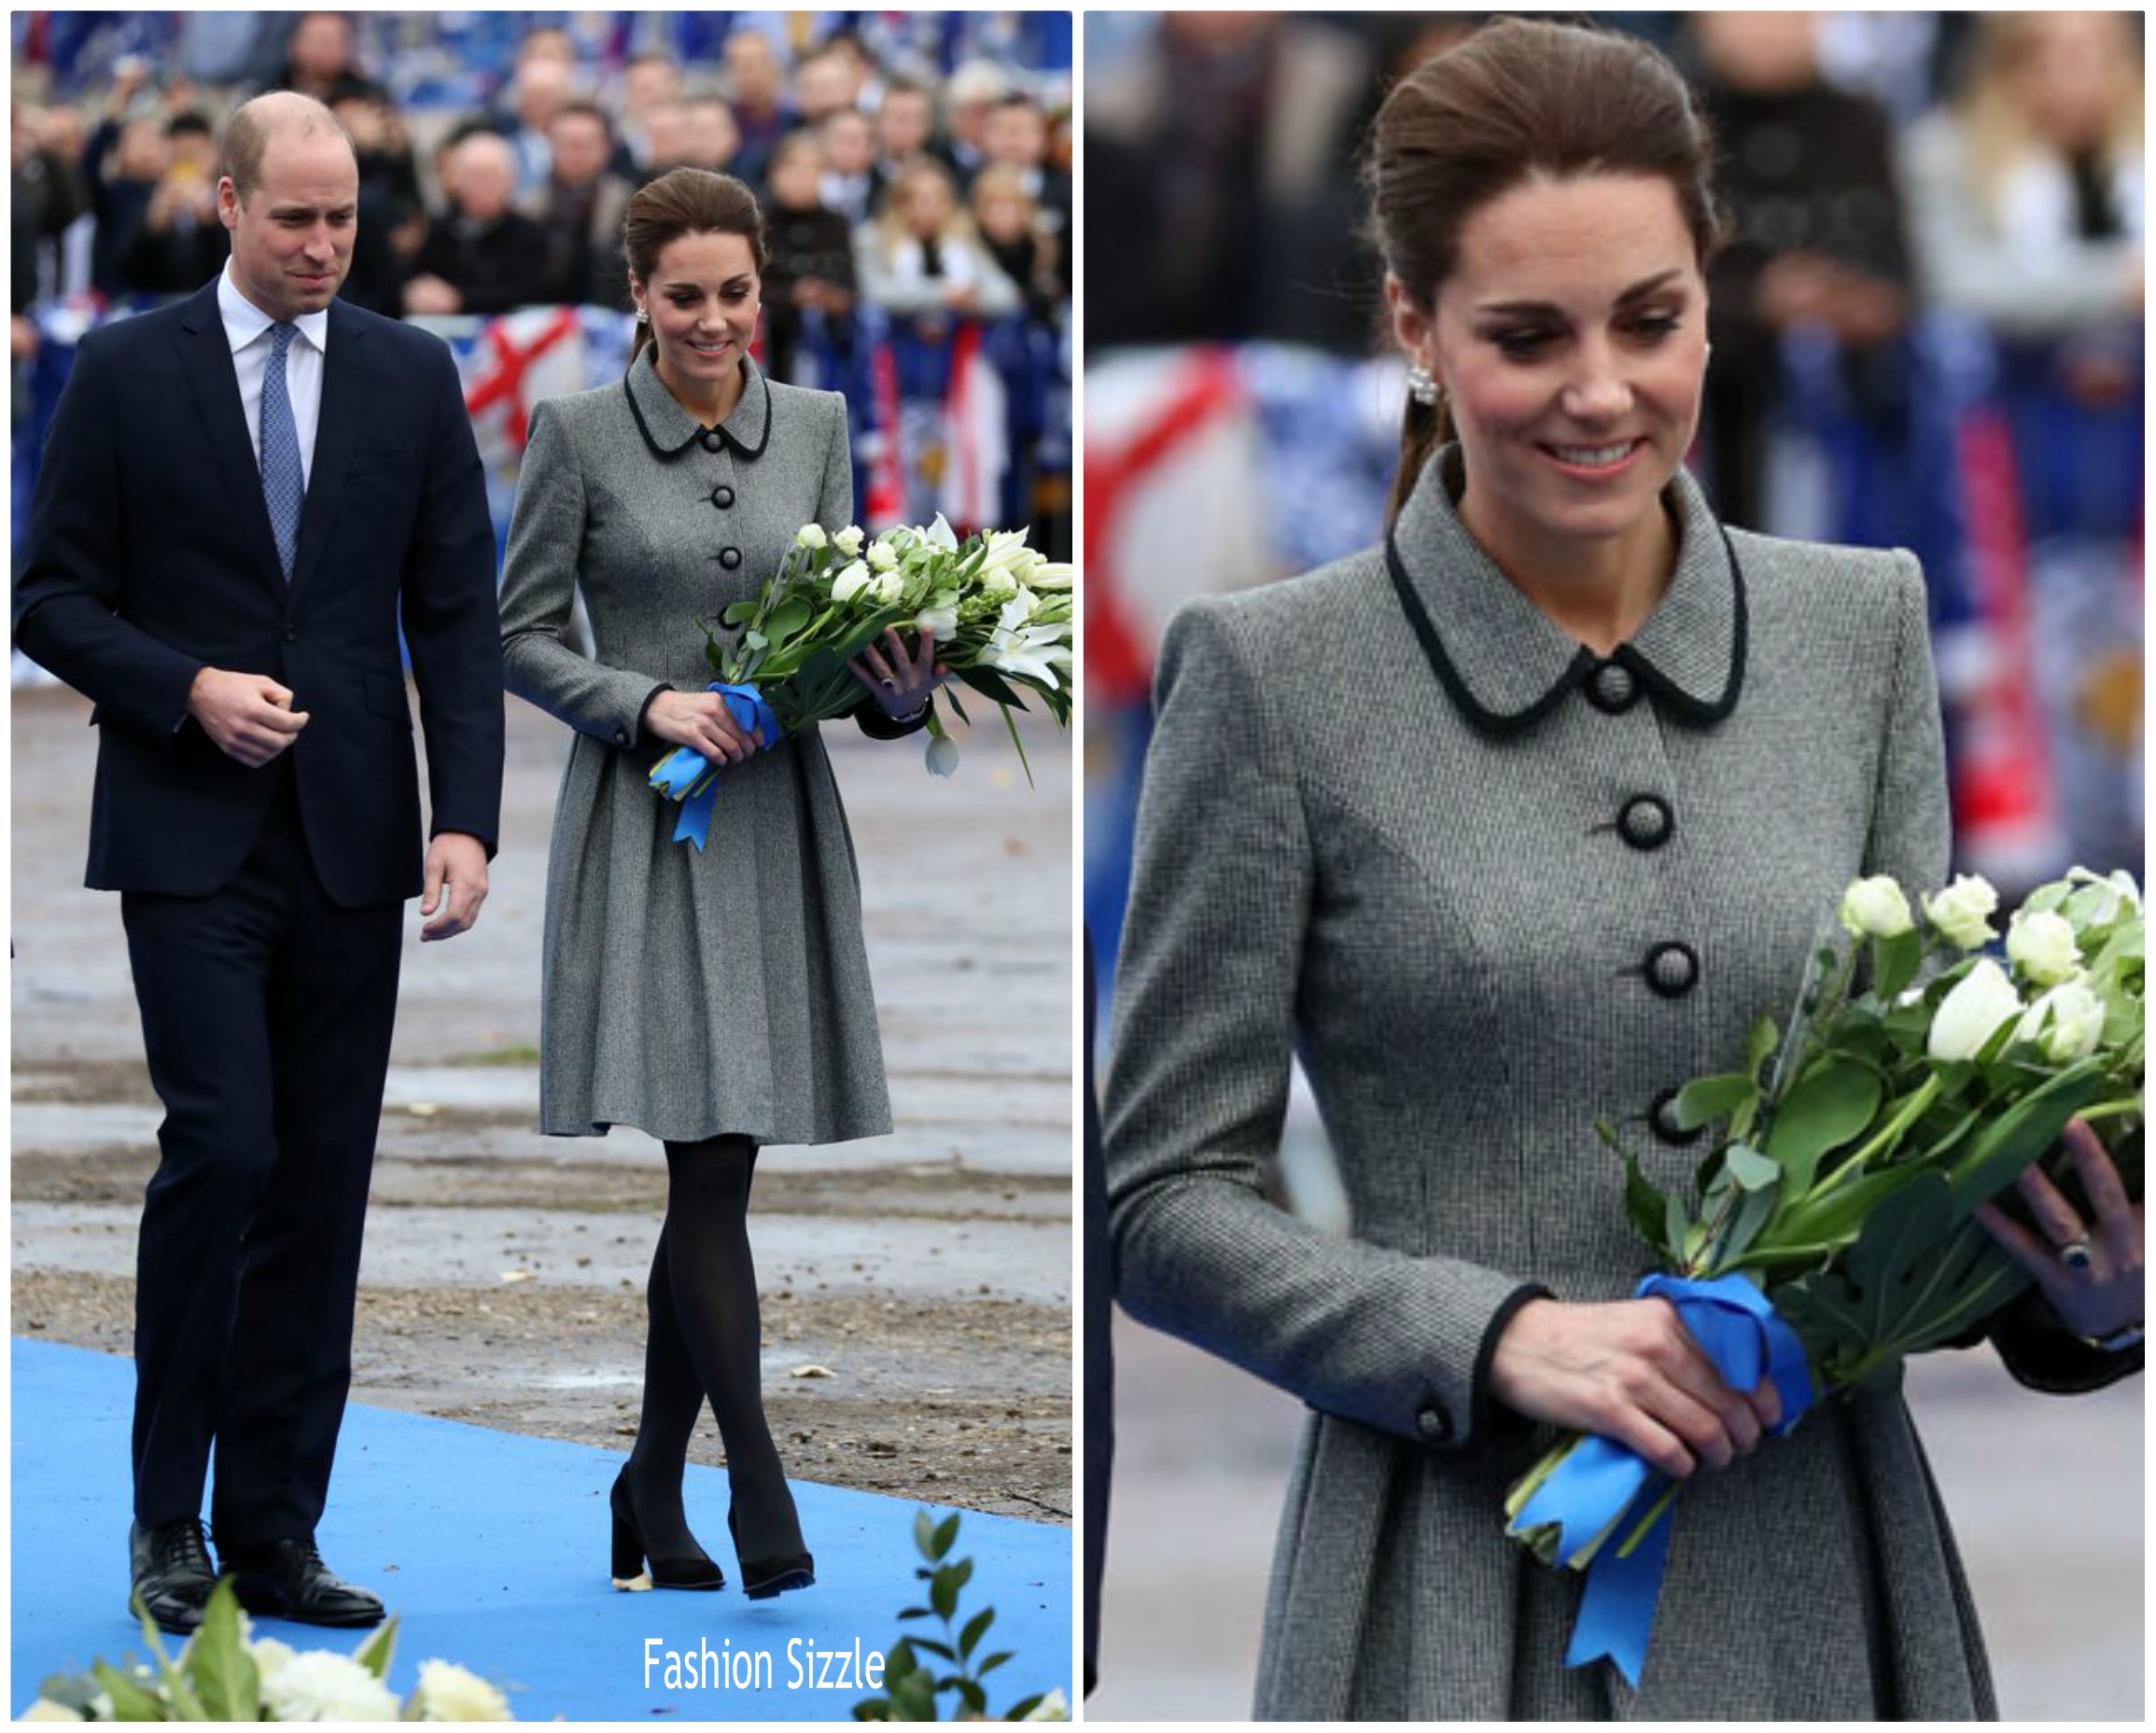 catherine-duchess-of-cambridge-in-catherine-walker-leicester-city-visit